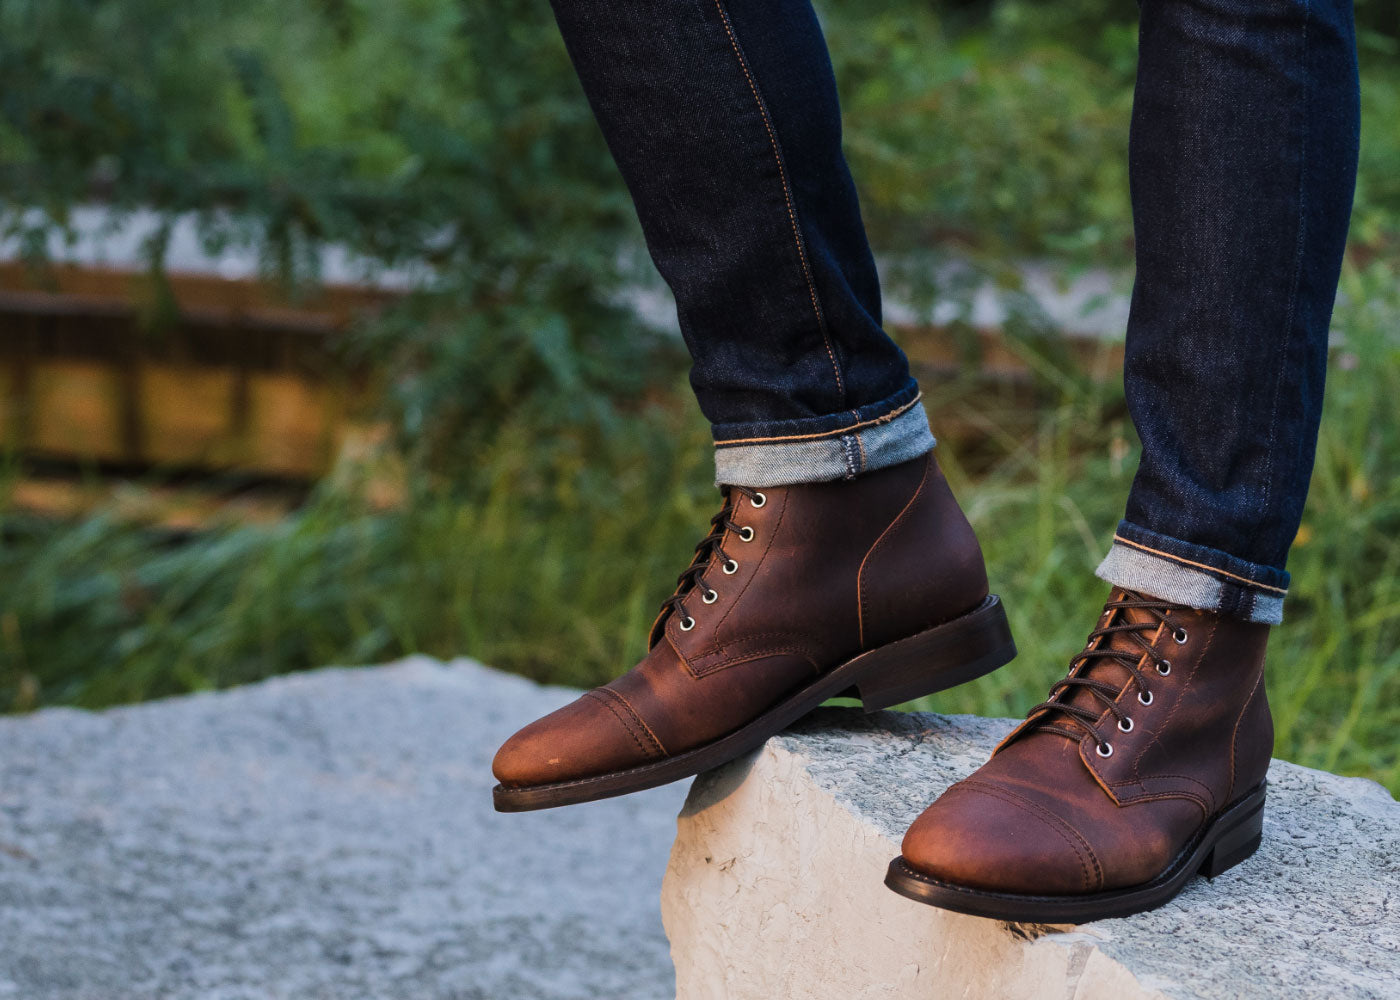 Best Men's Boots: Thursday Boot Company Arizona Adobe Captain